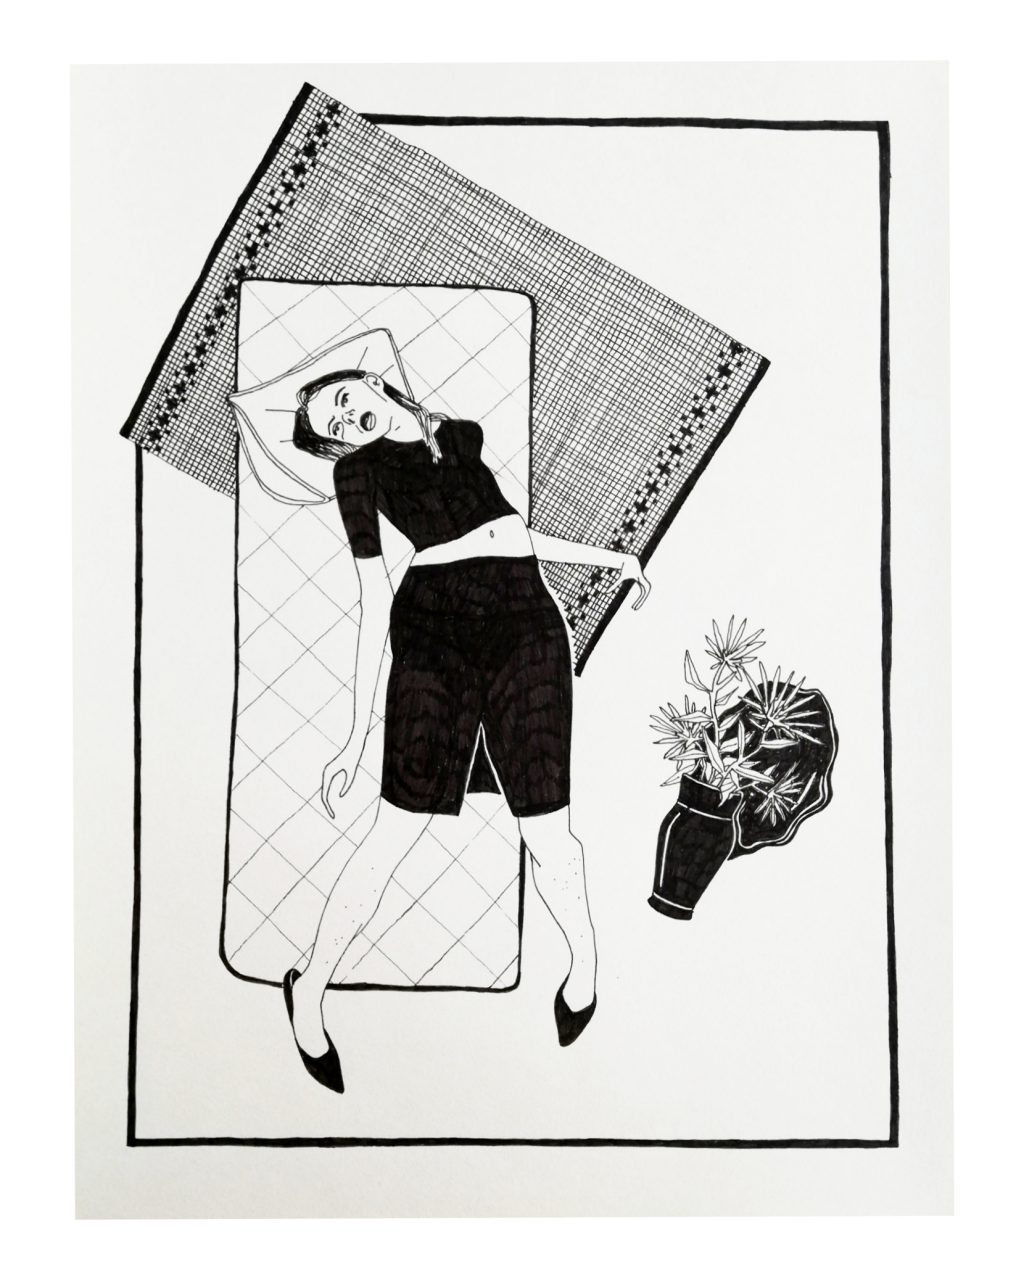 THE BED 28 x 36 cm, fineliner on paper, 2017.